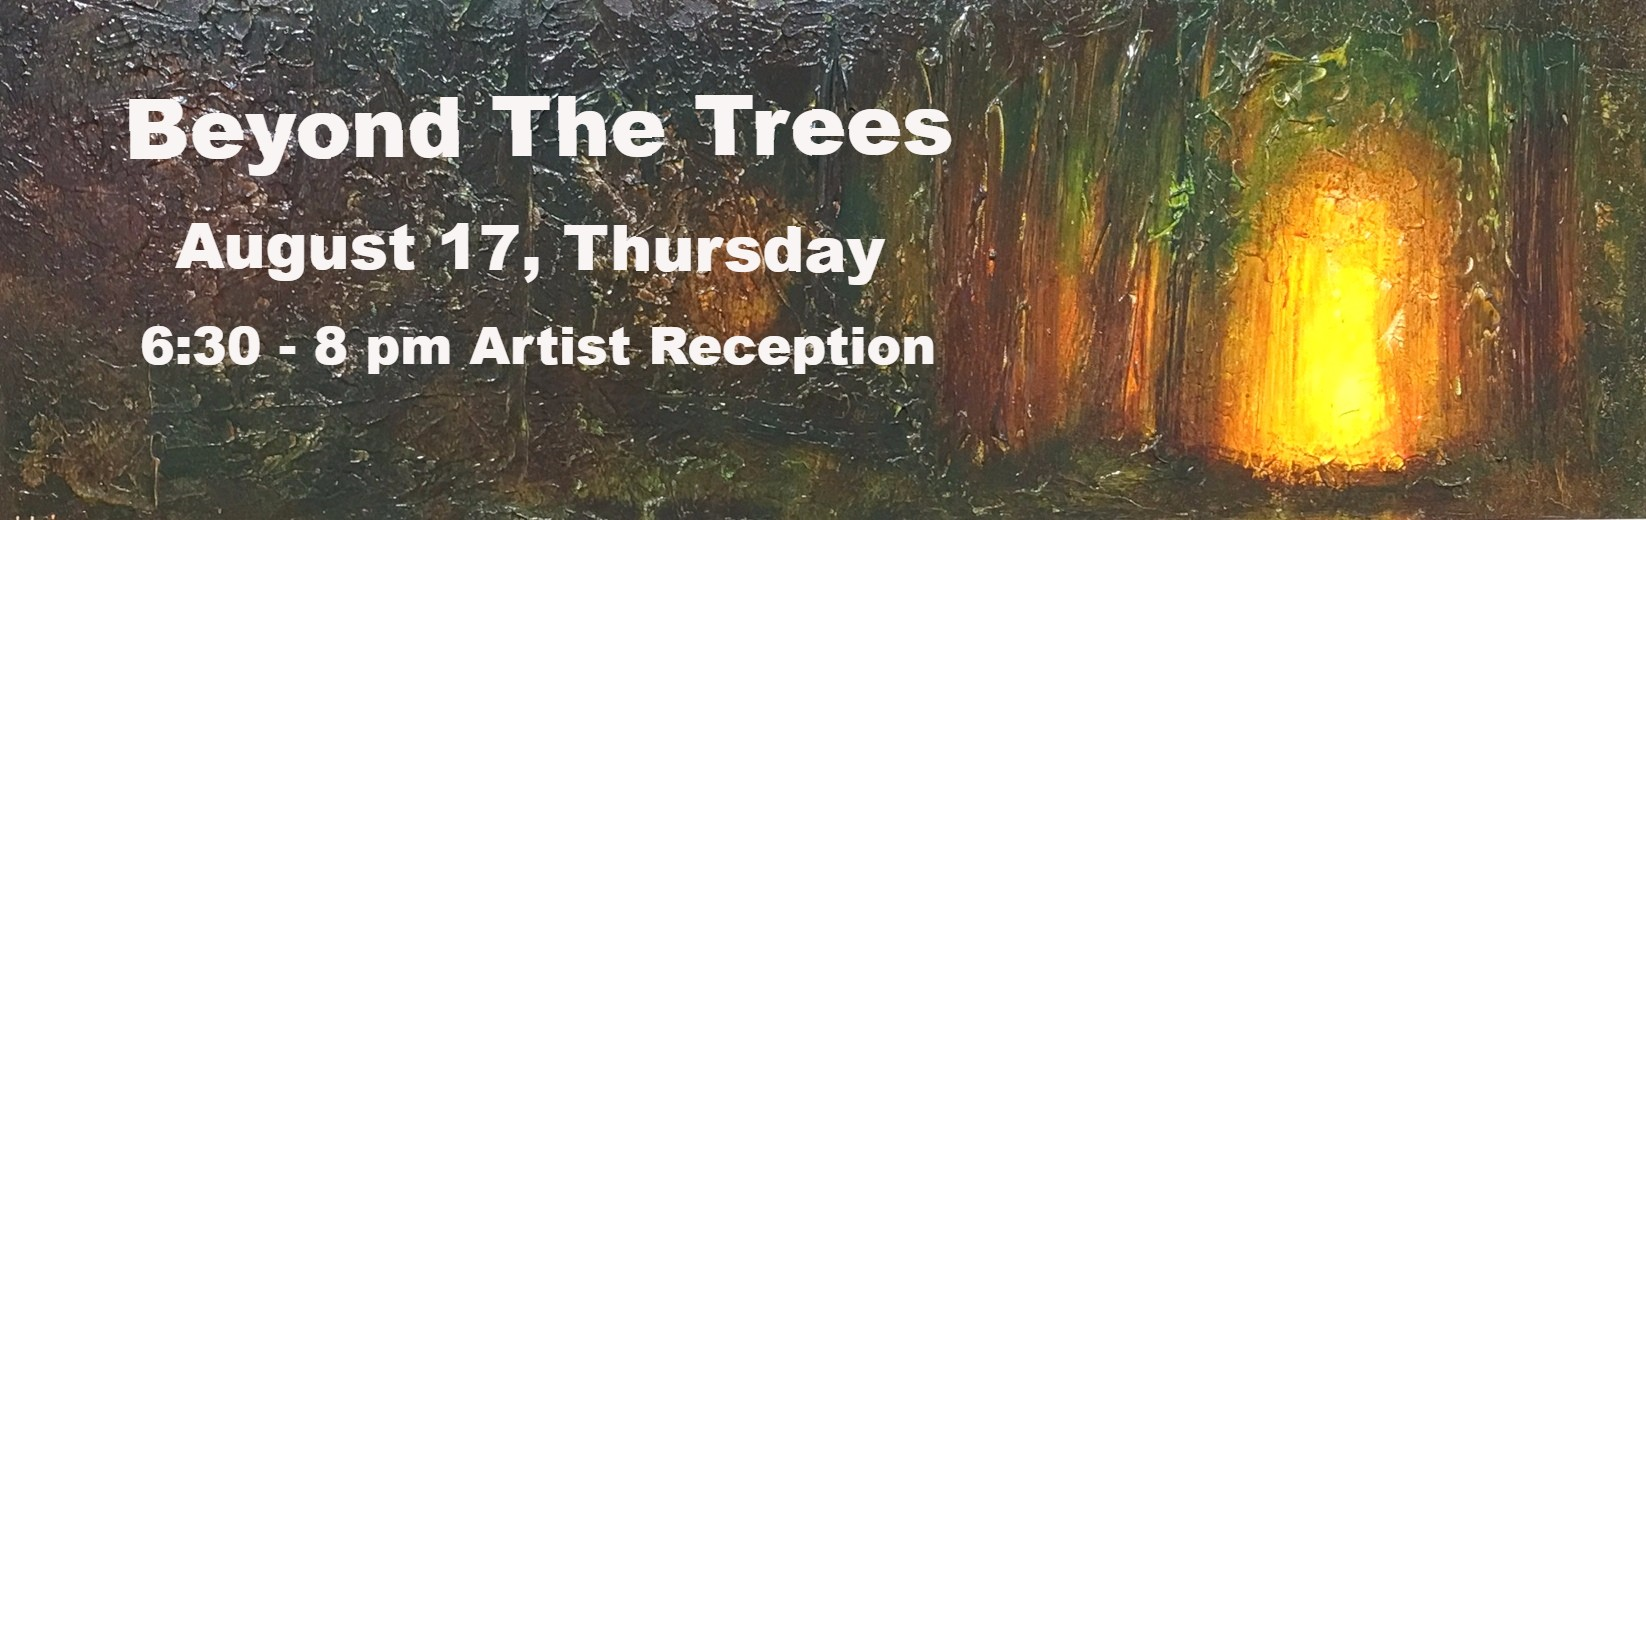 Jos Biviano, Reformation: Within the Forest Cathedral, Polychrome Resin, oil painting, landscape, Beyond the Trees show, original painting